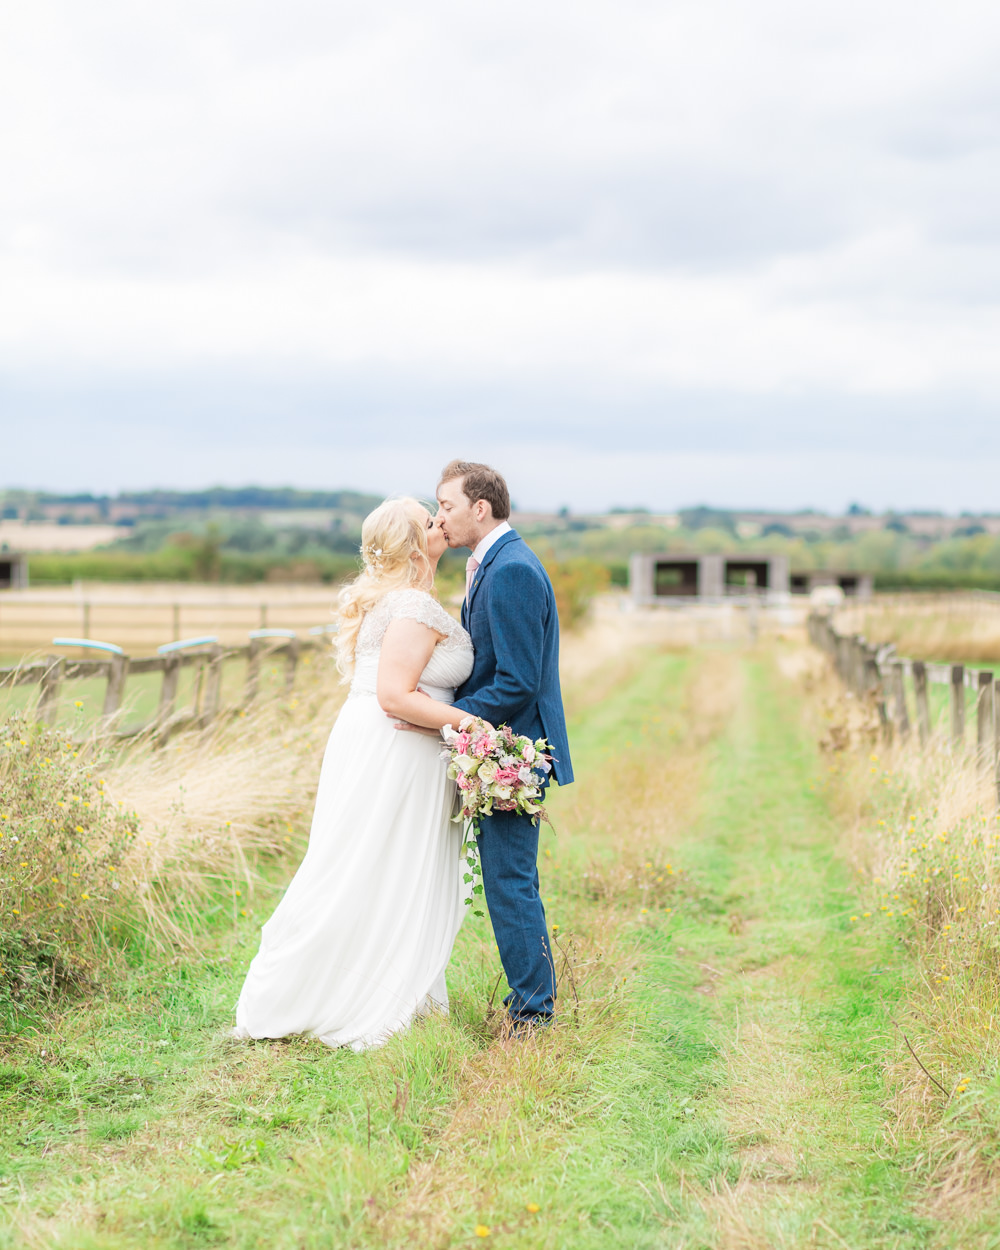 Bride Bridal Short Sleeve Lace Dress Gown Navy Suit Groom Bedfordshire Tipi Wedding Natalie Stevenson Photography